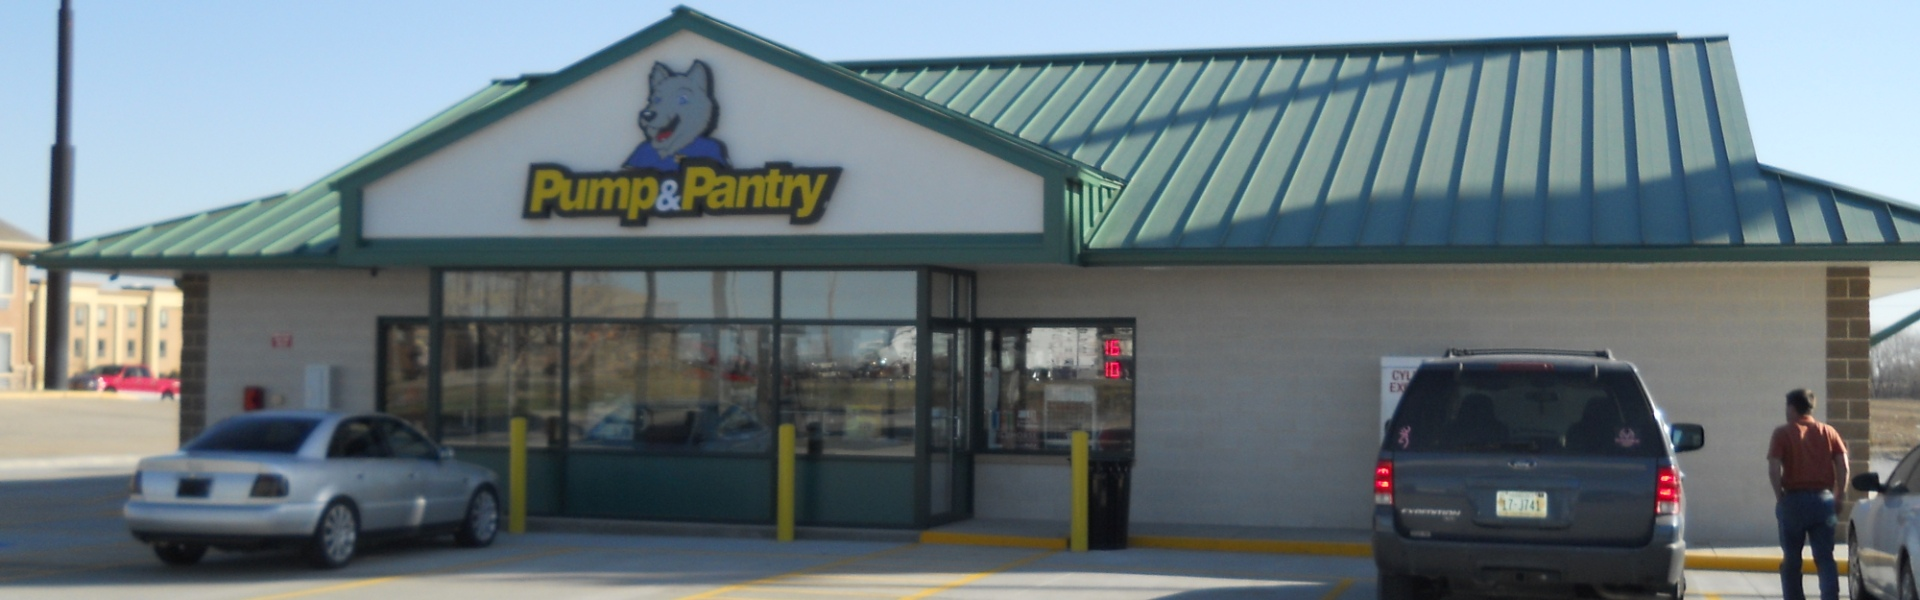 Pump And Pantry >> Pump Pantry Aims To Keep It Local